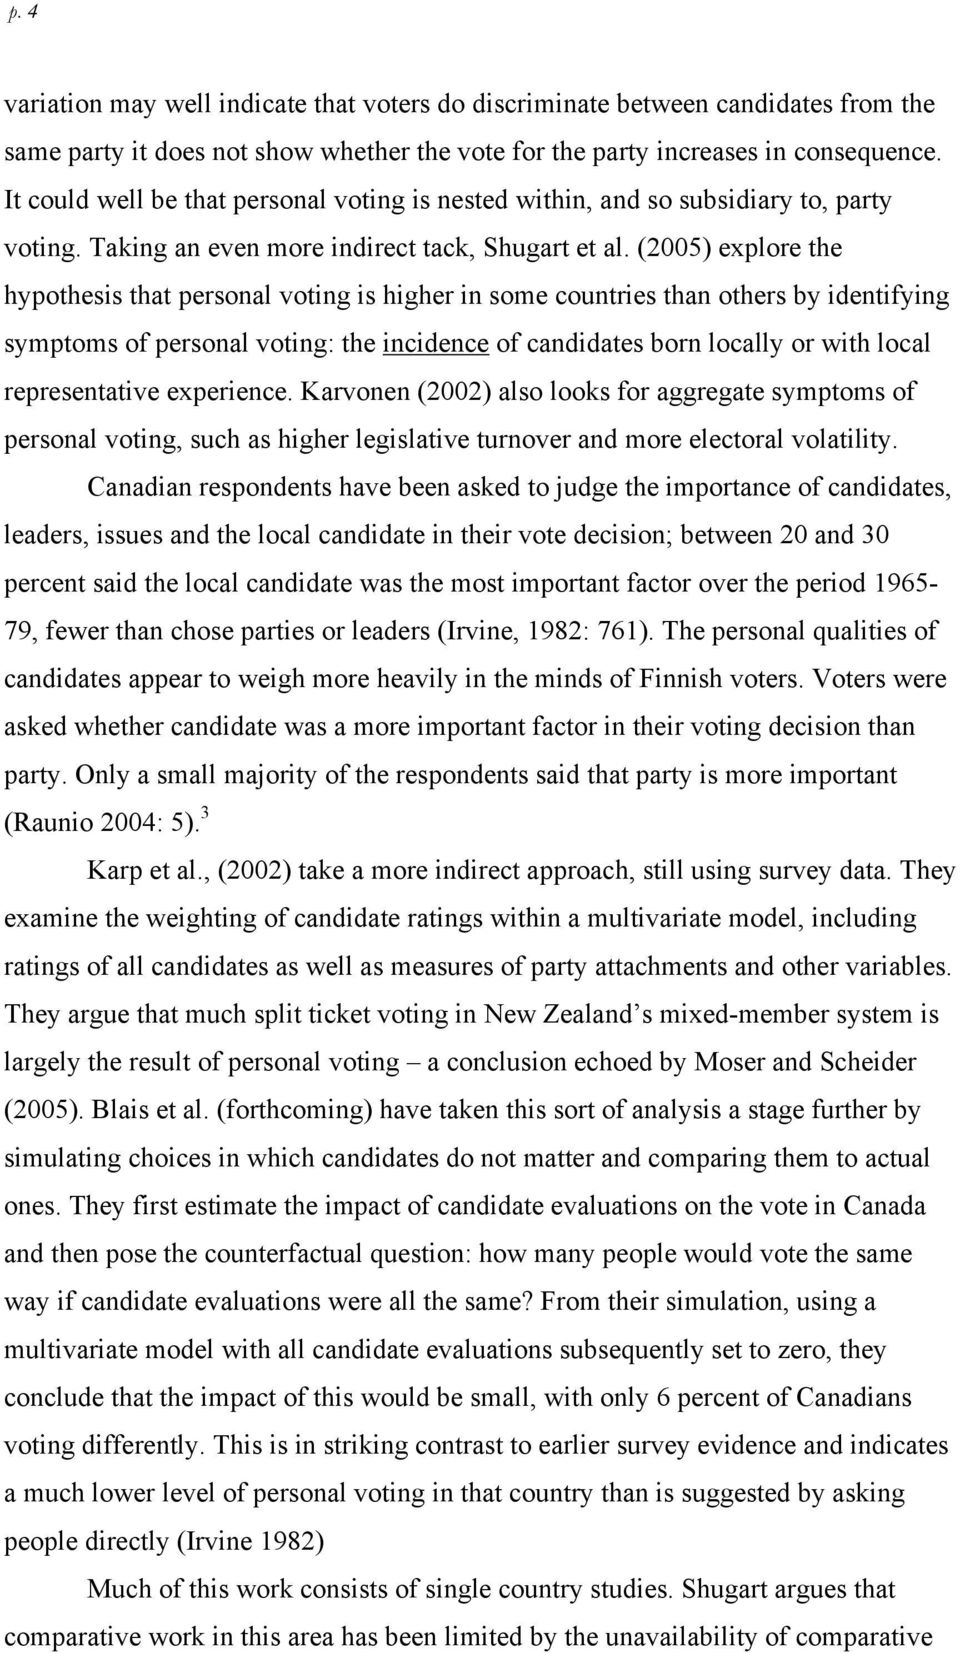 (2005) explore the hypothesis that personal voting is higher in some countries than others by identifying symptoms of personal voting: the incidence of candidates born locally or with local